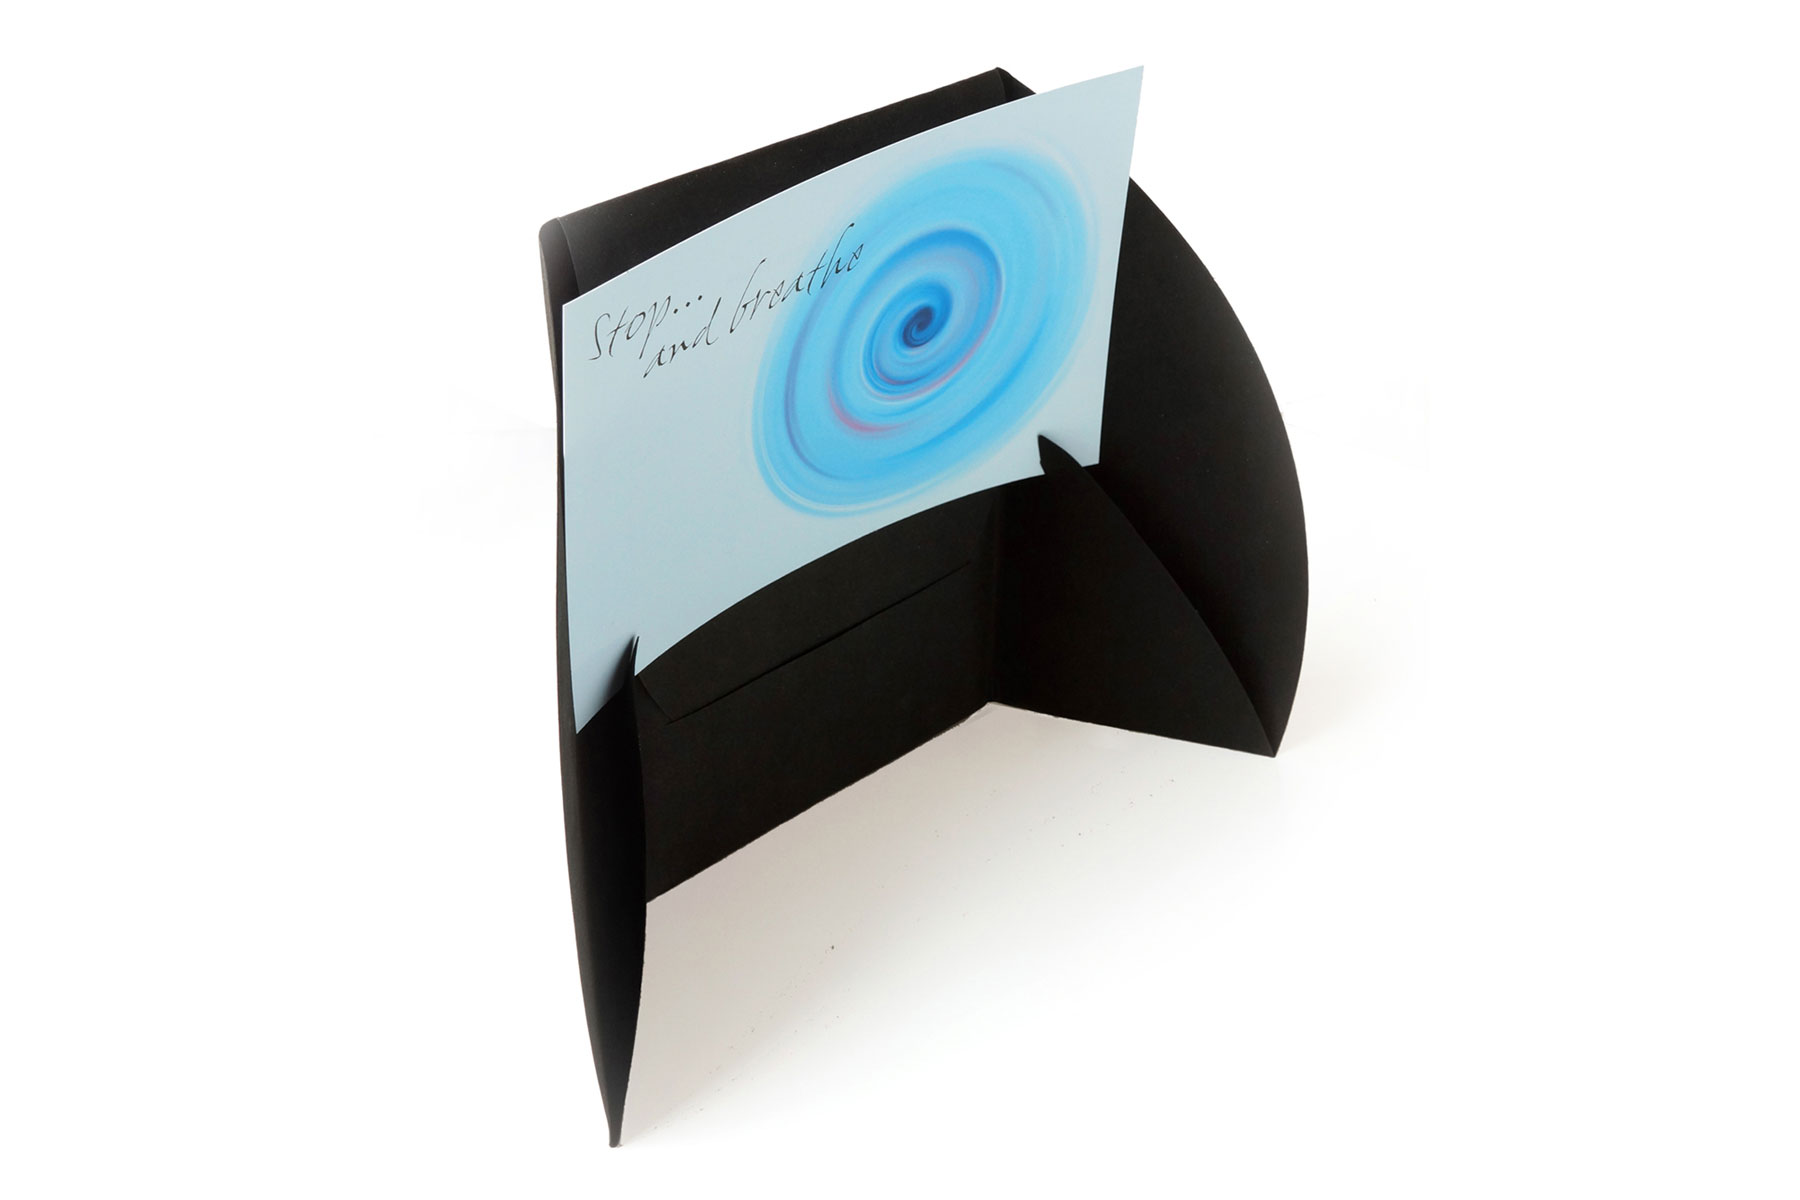 The stand allows the cards to be held upright and viewed at eye level, thus encouraging more their more frequent use.